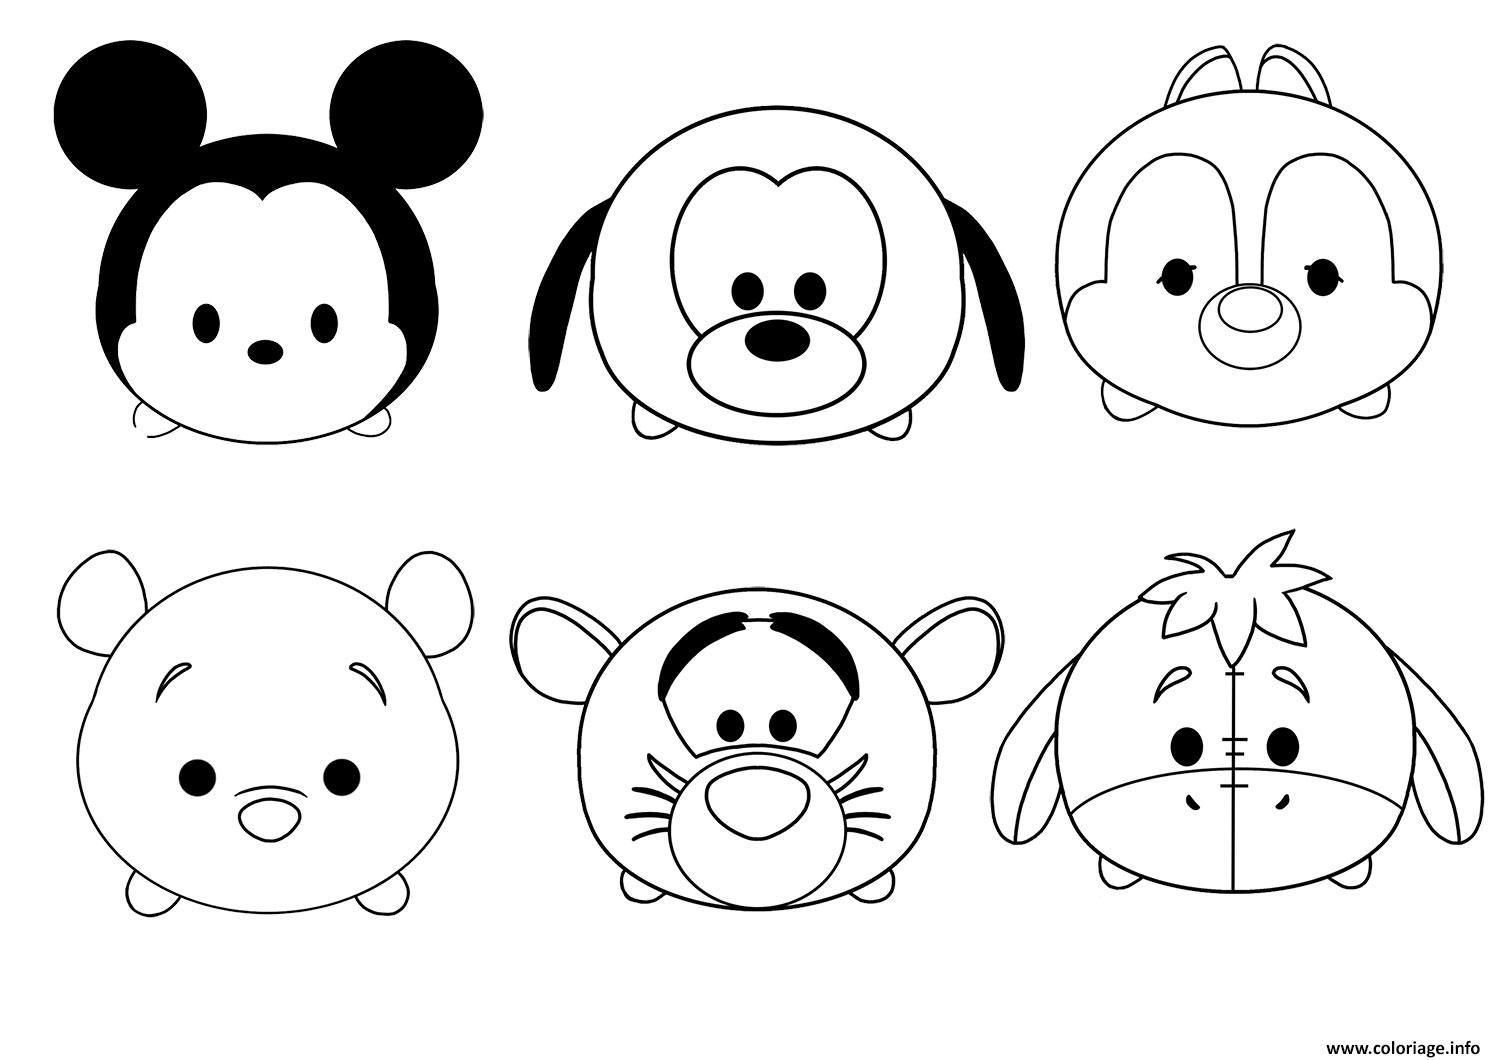 Coloriage tsum tsum disney facile enfant simple dessin - Dessin de disney facile ...